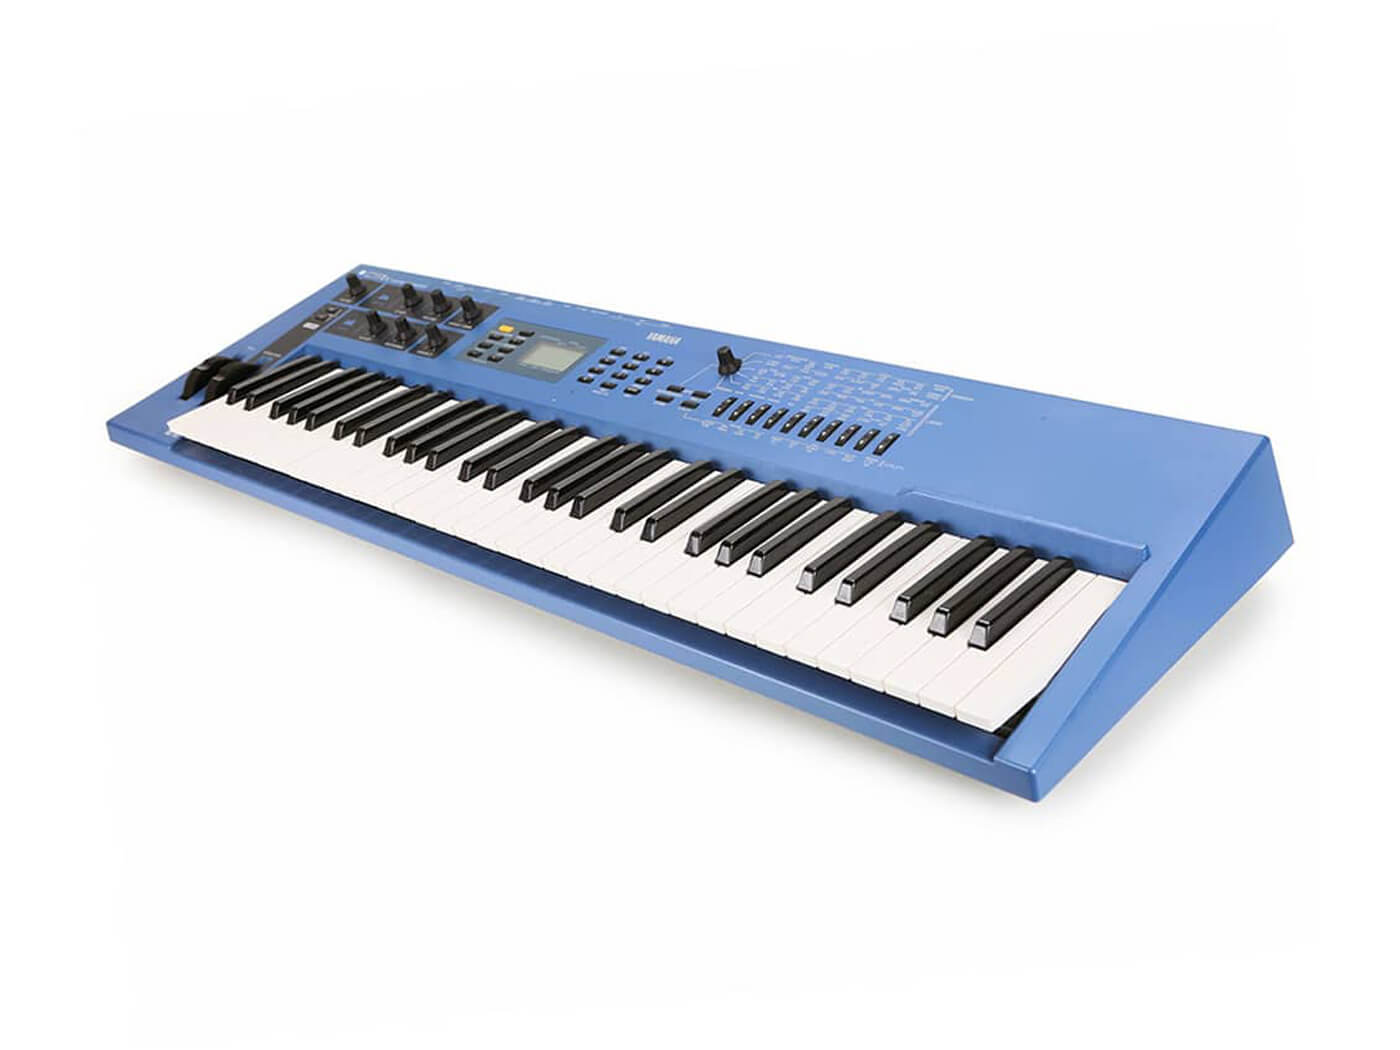 Yamaha CS1x: The digital synth with an analogue style – Best